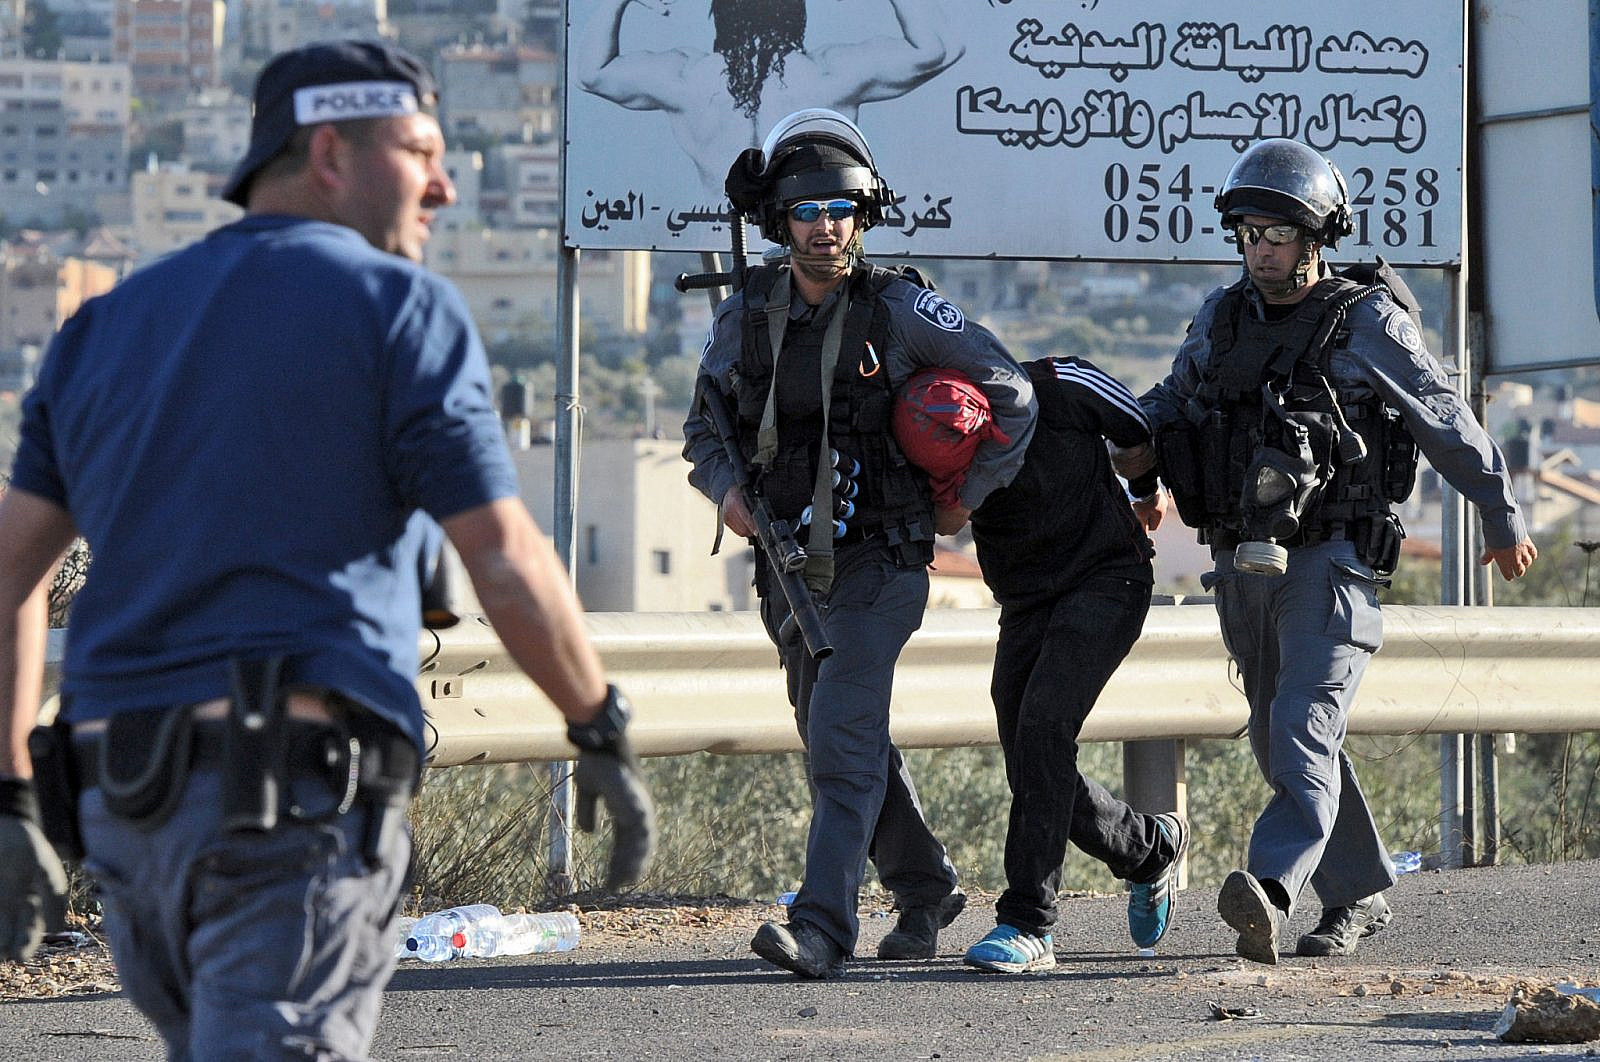 Israeli Border Police arrest Palestinian youth during clashes at the entrance to the Arab village, Kfar Kanna, in northern Israel, November 9, 2014. (Flash90)